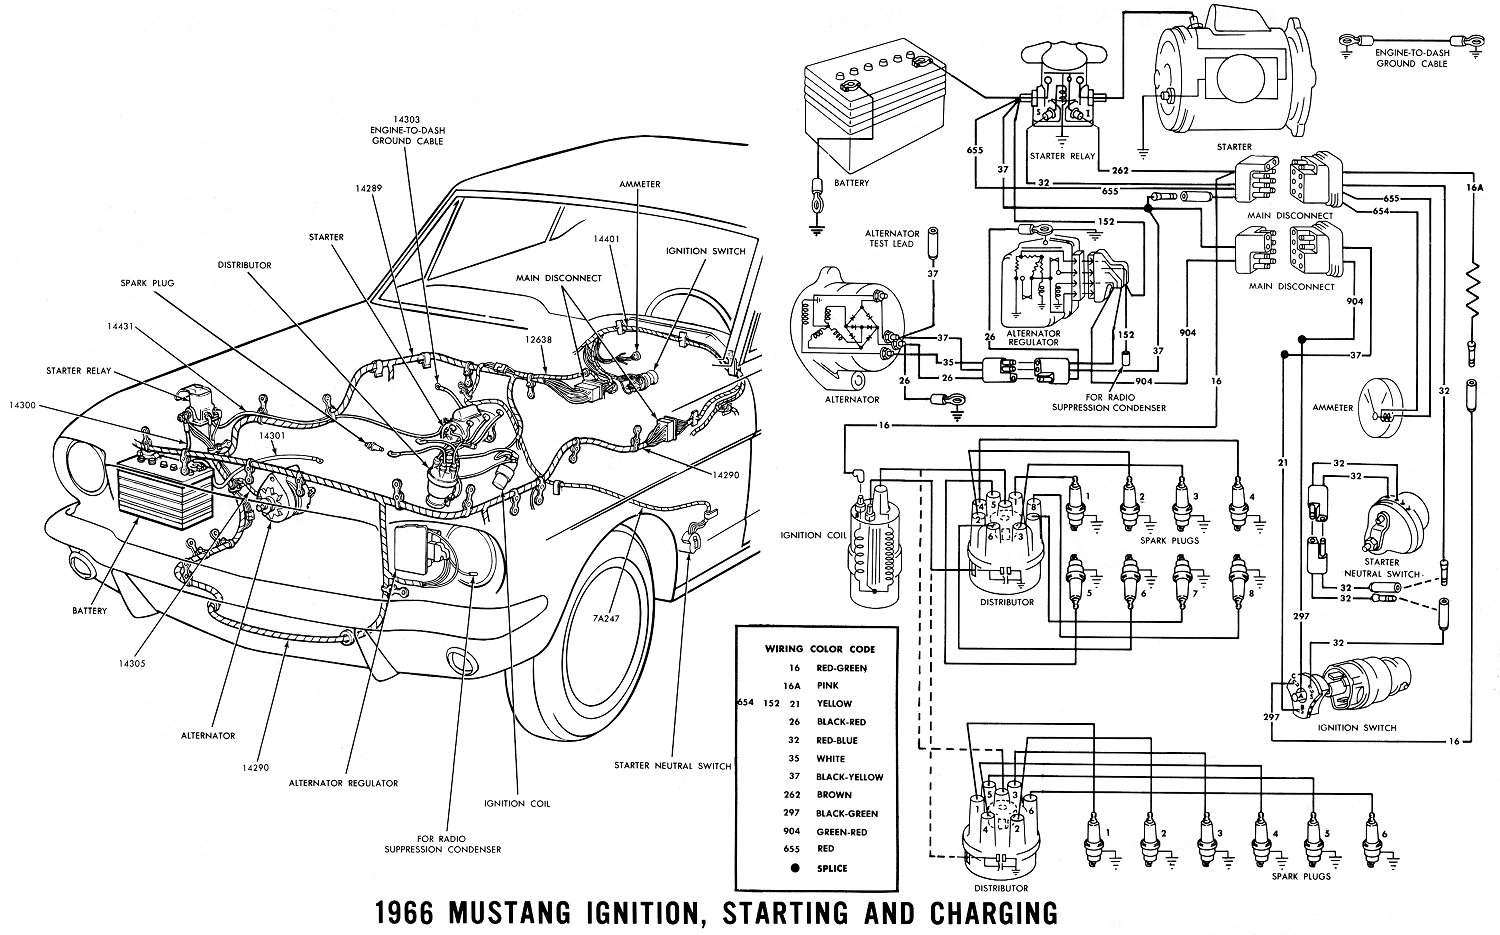 66ignit 1966 mustang wiring diagrams average joe restoration 1969 mustang wiring harness diagram at alyssarenee.co